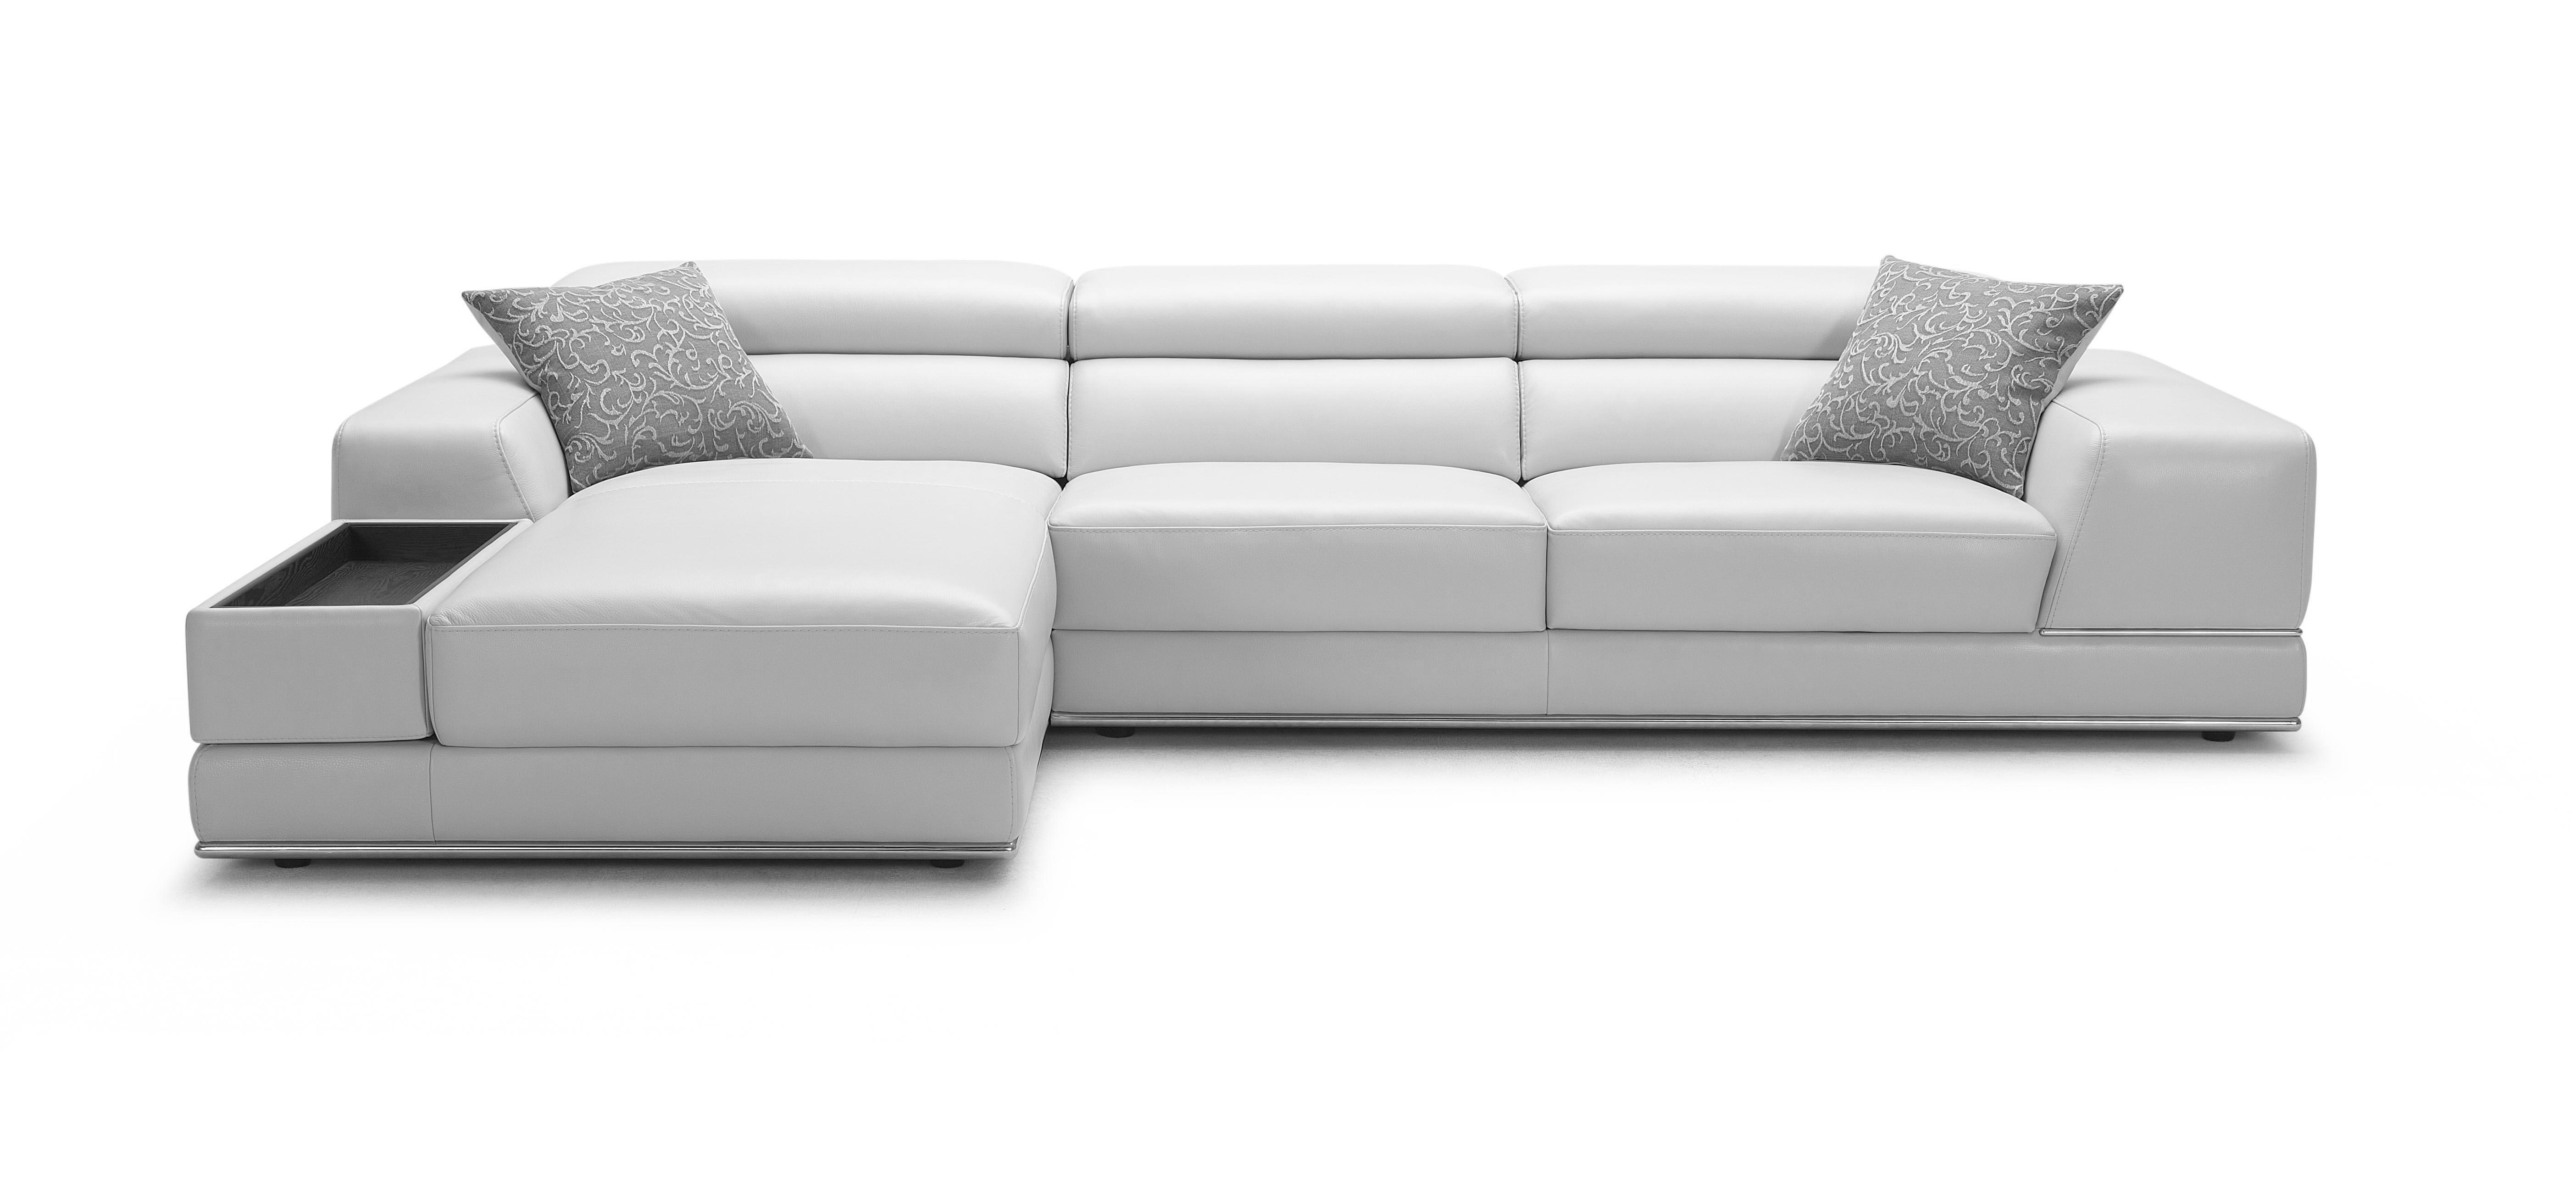 Furniture : Sectional Sofa Grey Corner Couch With Pull Out Bed In Well Known Guelph Sectional Sofas (View 9 of 20)